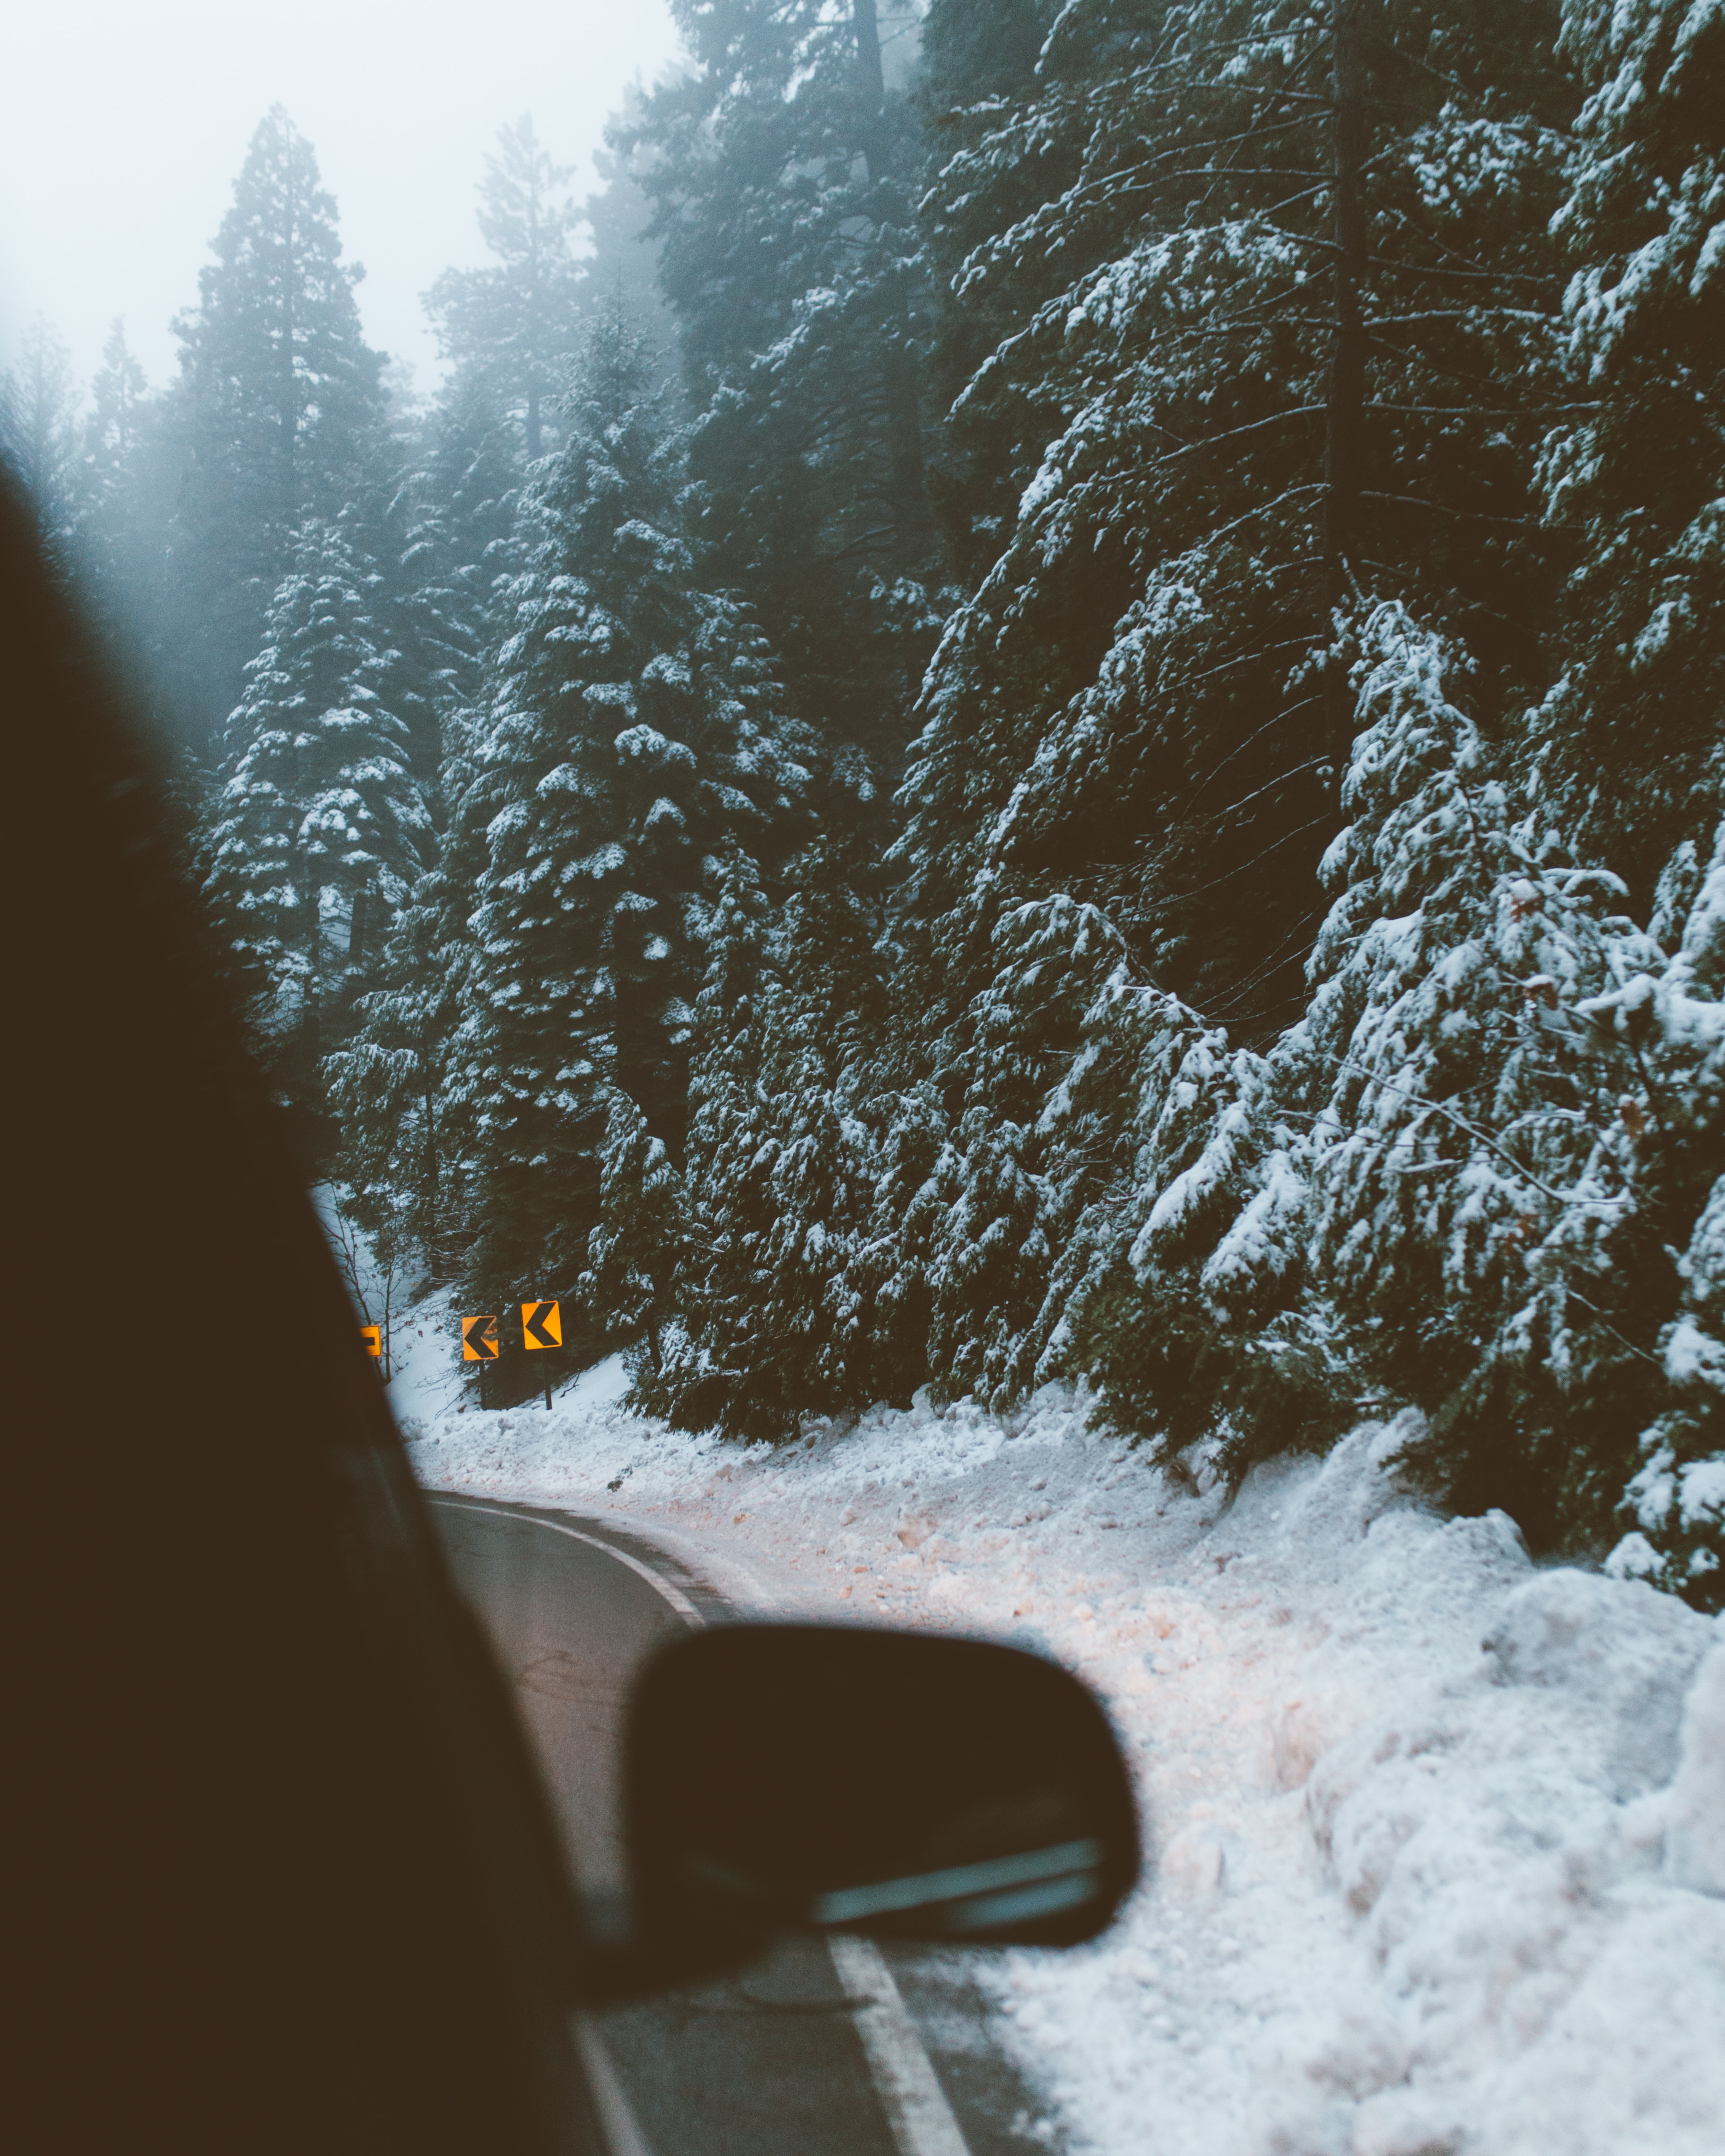 Driving around a turn on a forest road in the winter at Lake Arrowhead in California